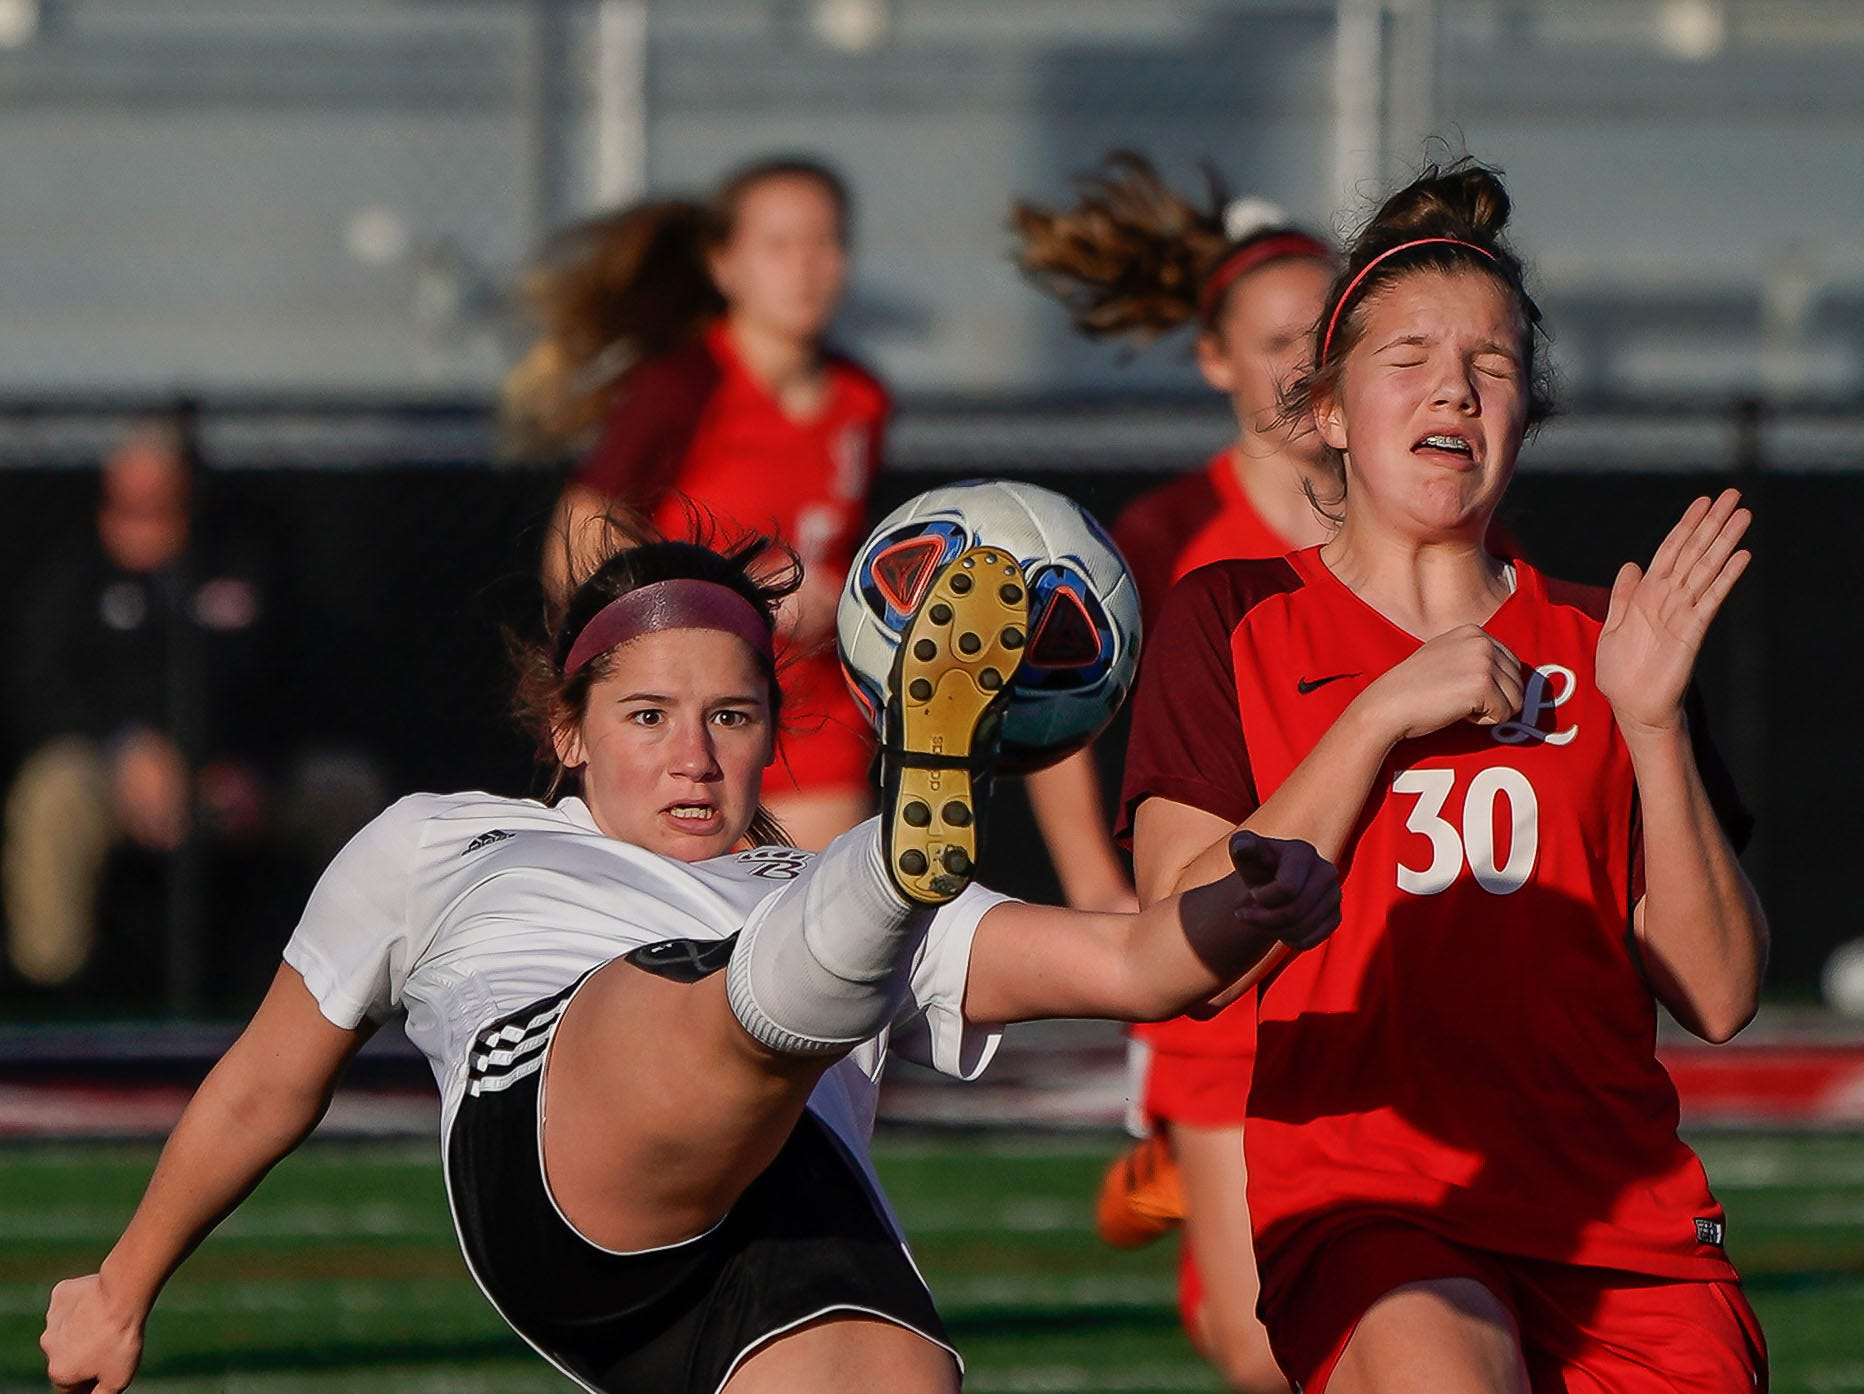 Long Beach's Alexa Beets (6) high kicks a ball against Lafayette's Lucy Wilson (3) during the MHSAA 5A Girls Soccer Championships held at Brandon High School in Brandon, MS, Saturday February 9, 2019.(Bob Smith-For The Clarion Ledger)